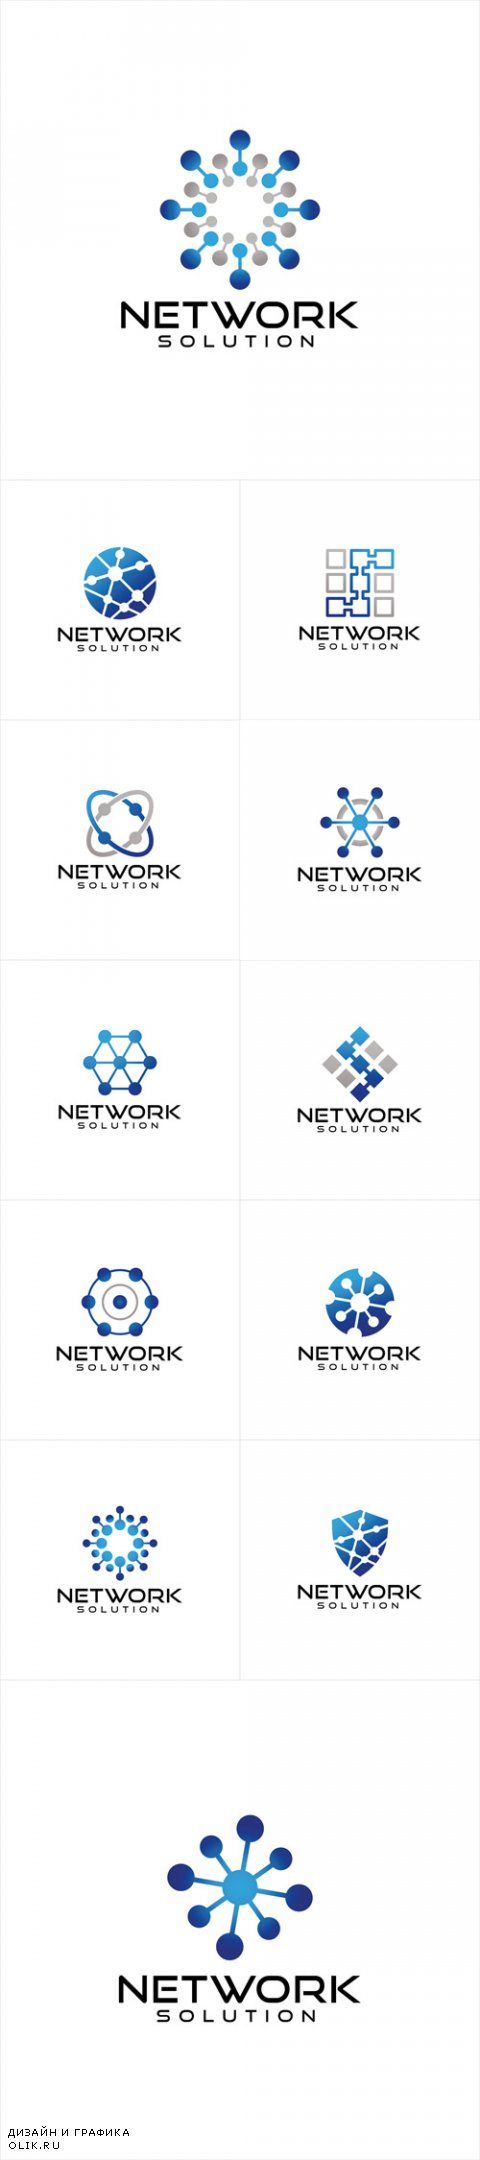 Vector Network Logo Design